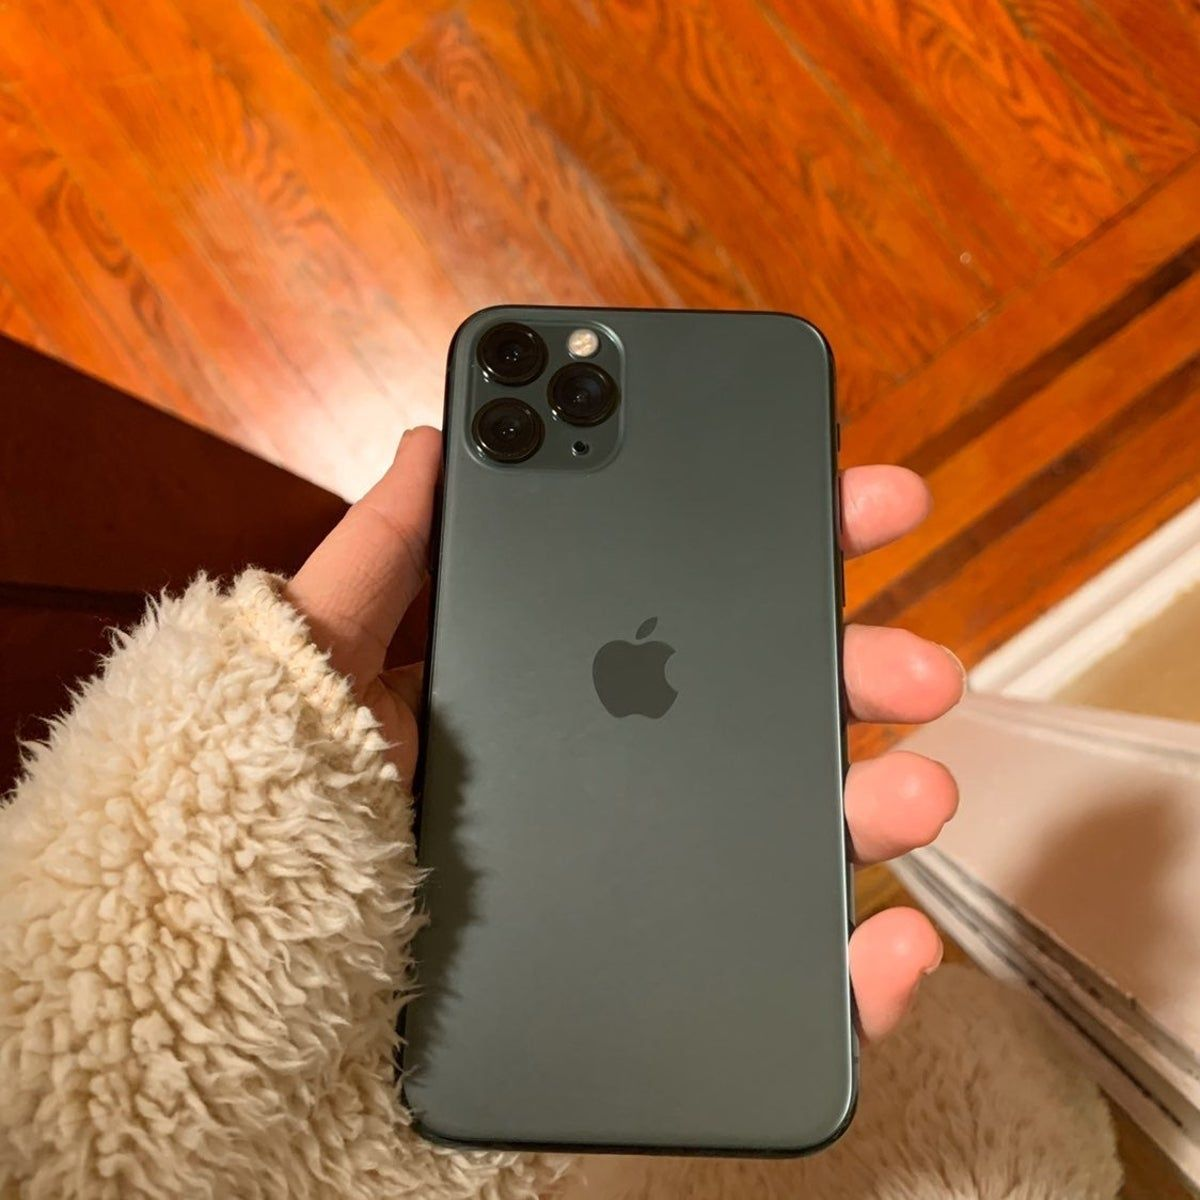 Iphone 11 Pro Midnight Green 512 Gb In 2020 Iphone Apple Phone Case Iphone Phone Cases